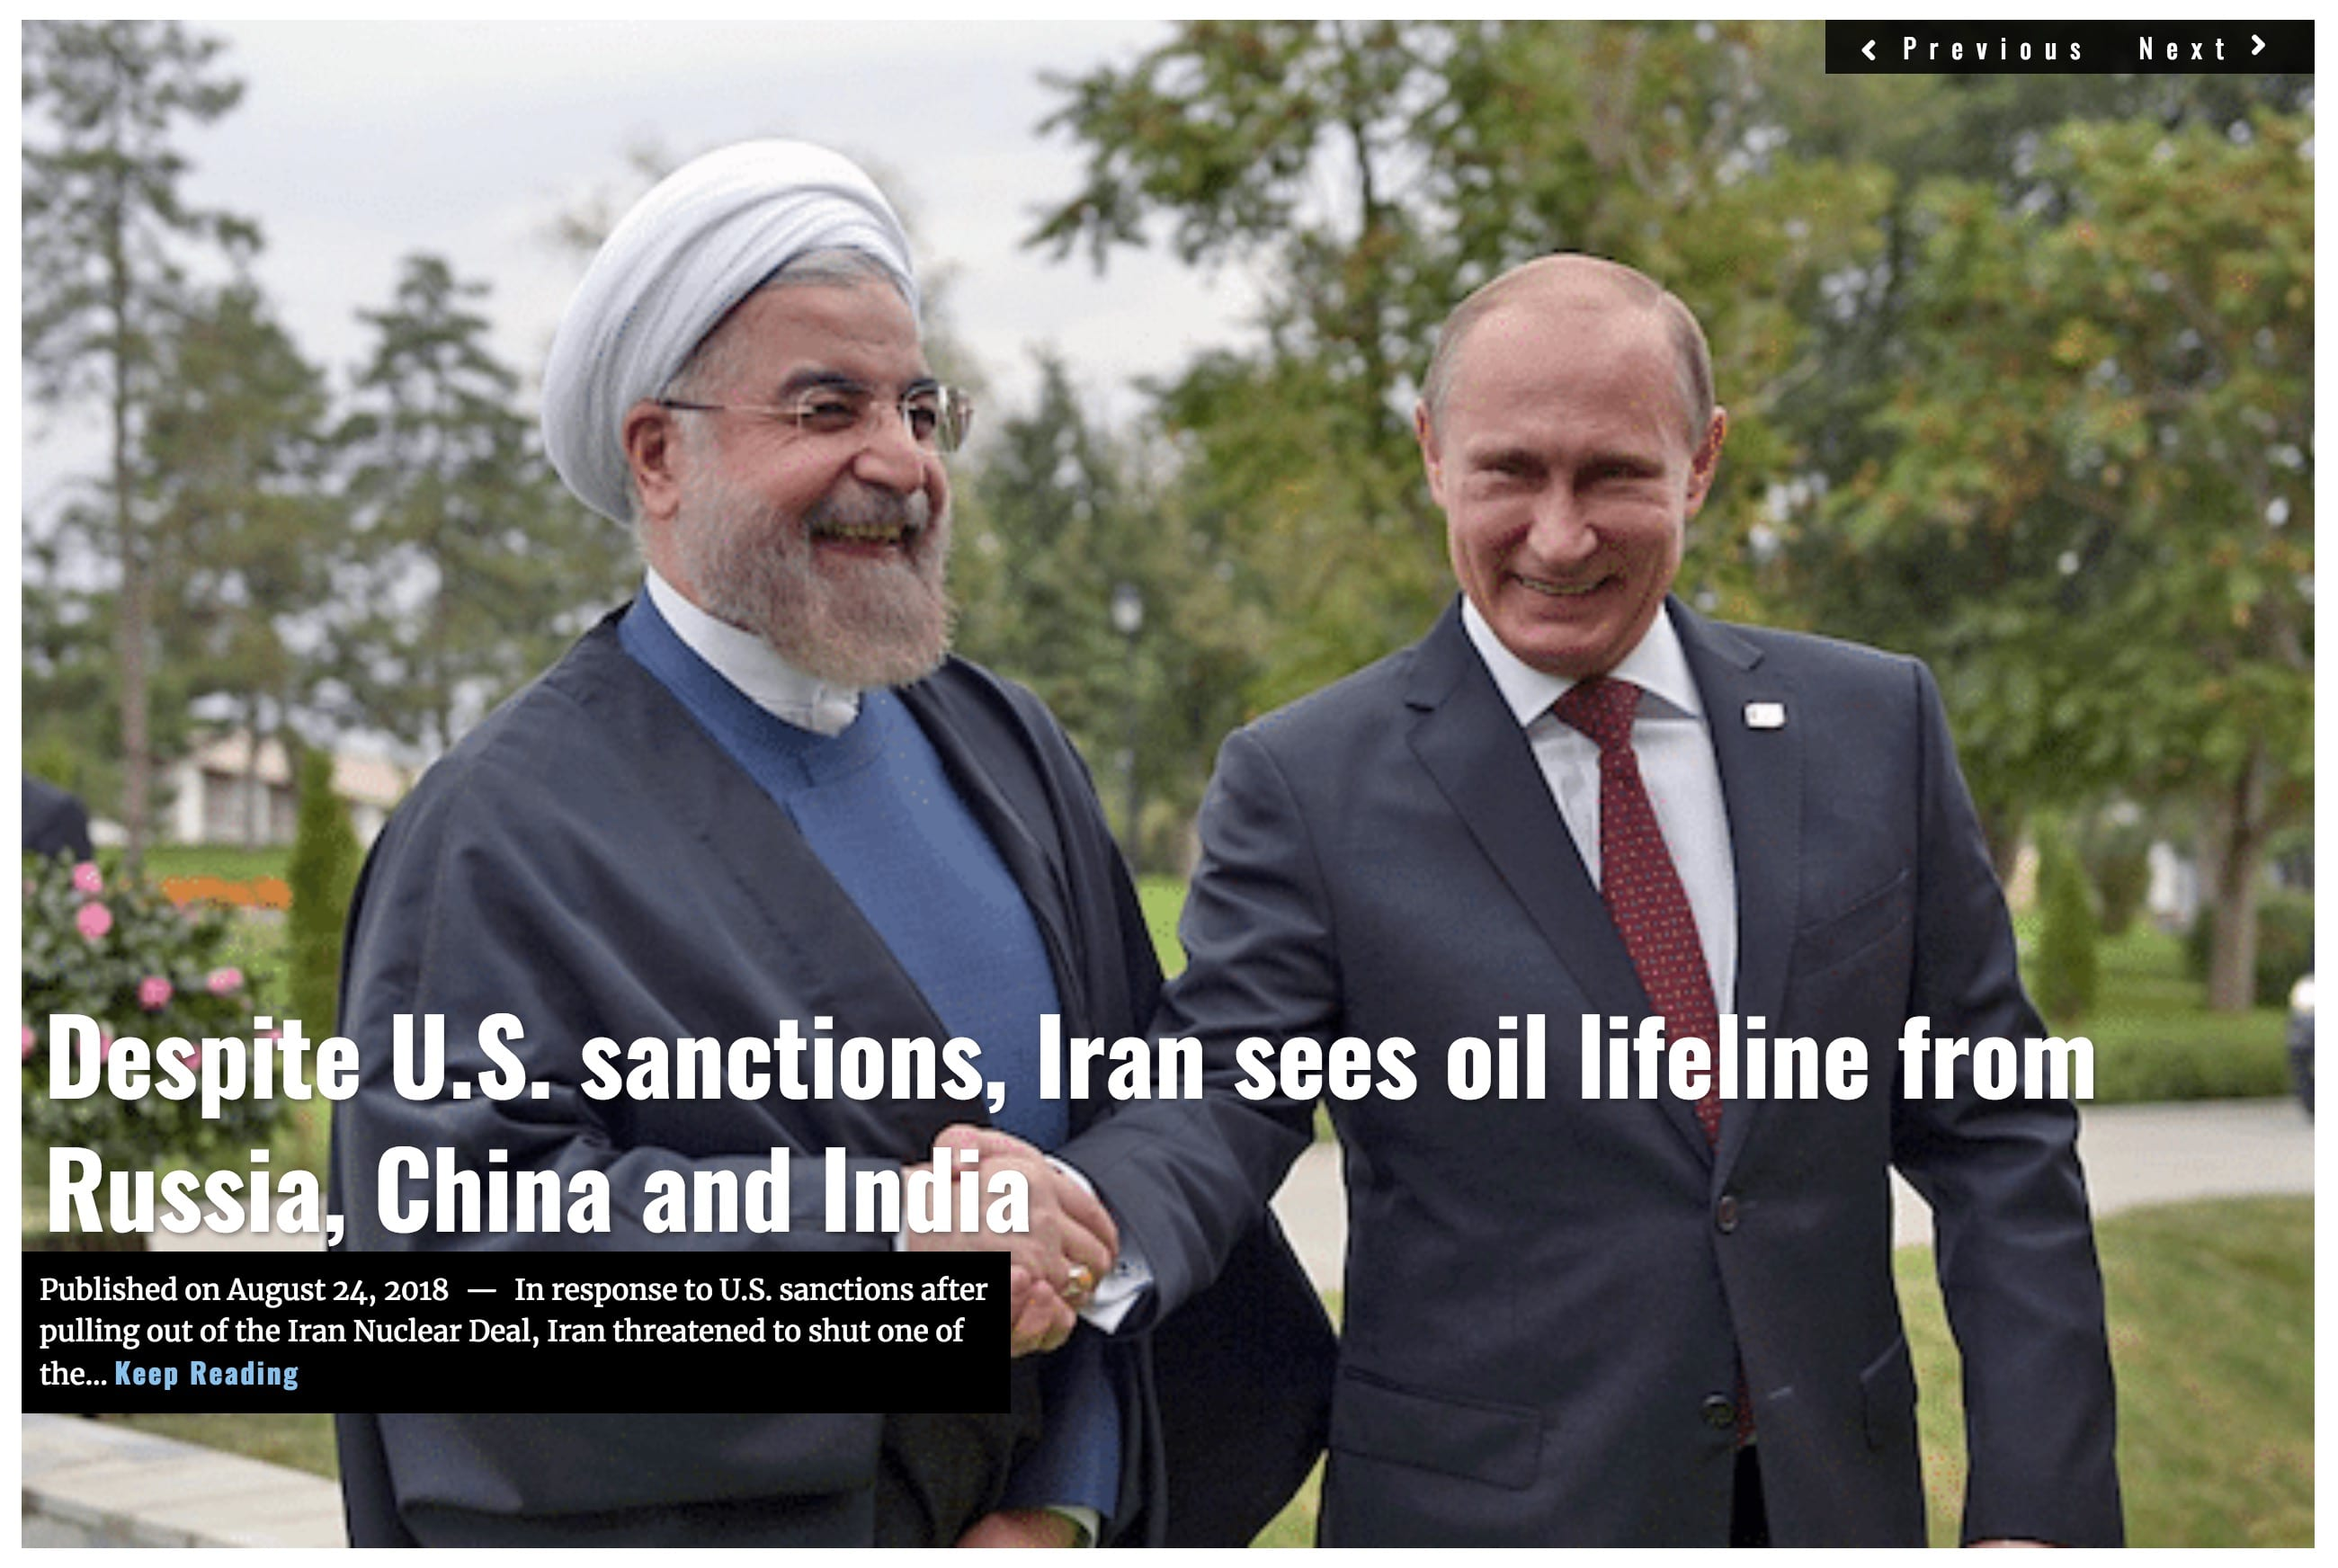 Image Lima Charlie News Headline Iran Oil Lifeline AUG 24 2018